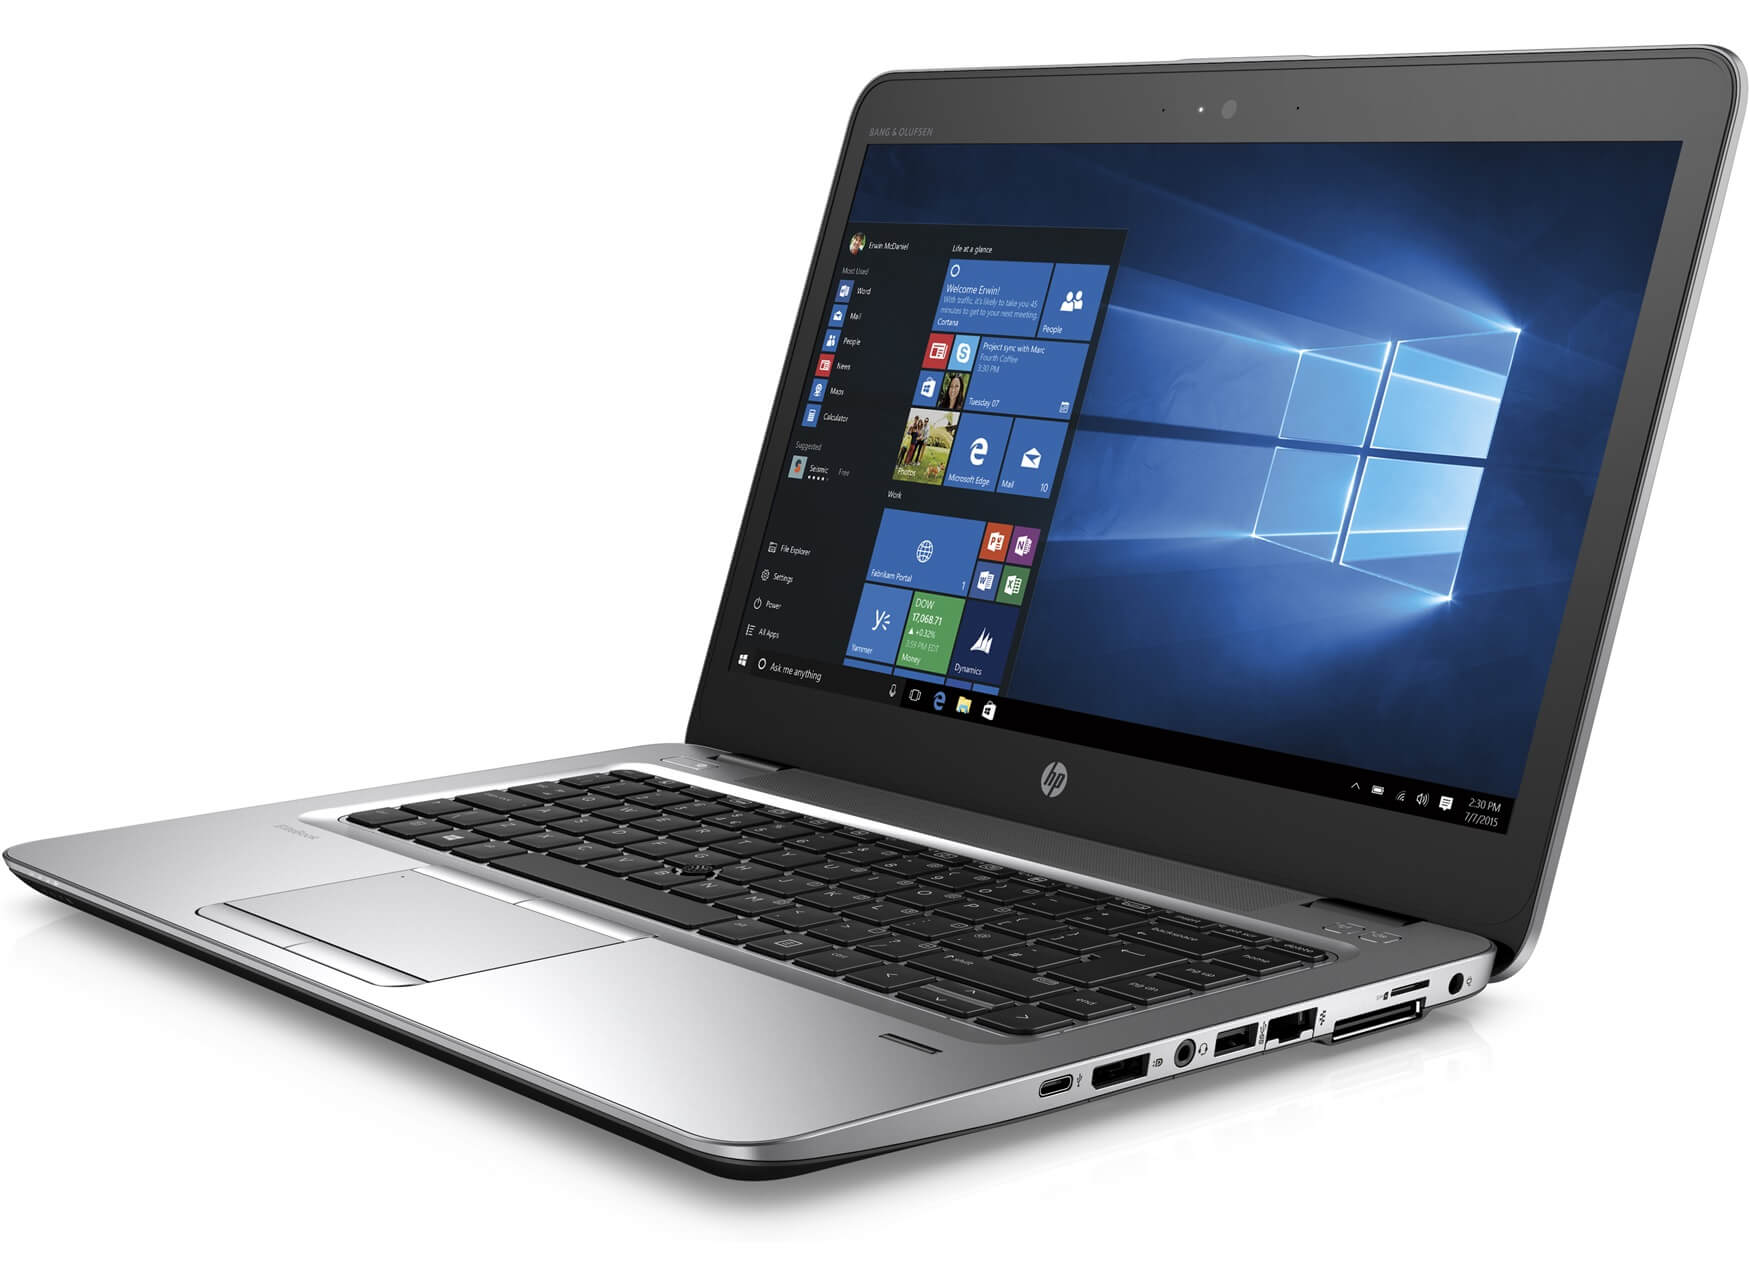 HP is silently installing resource hogging telemetry software